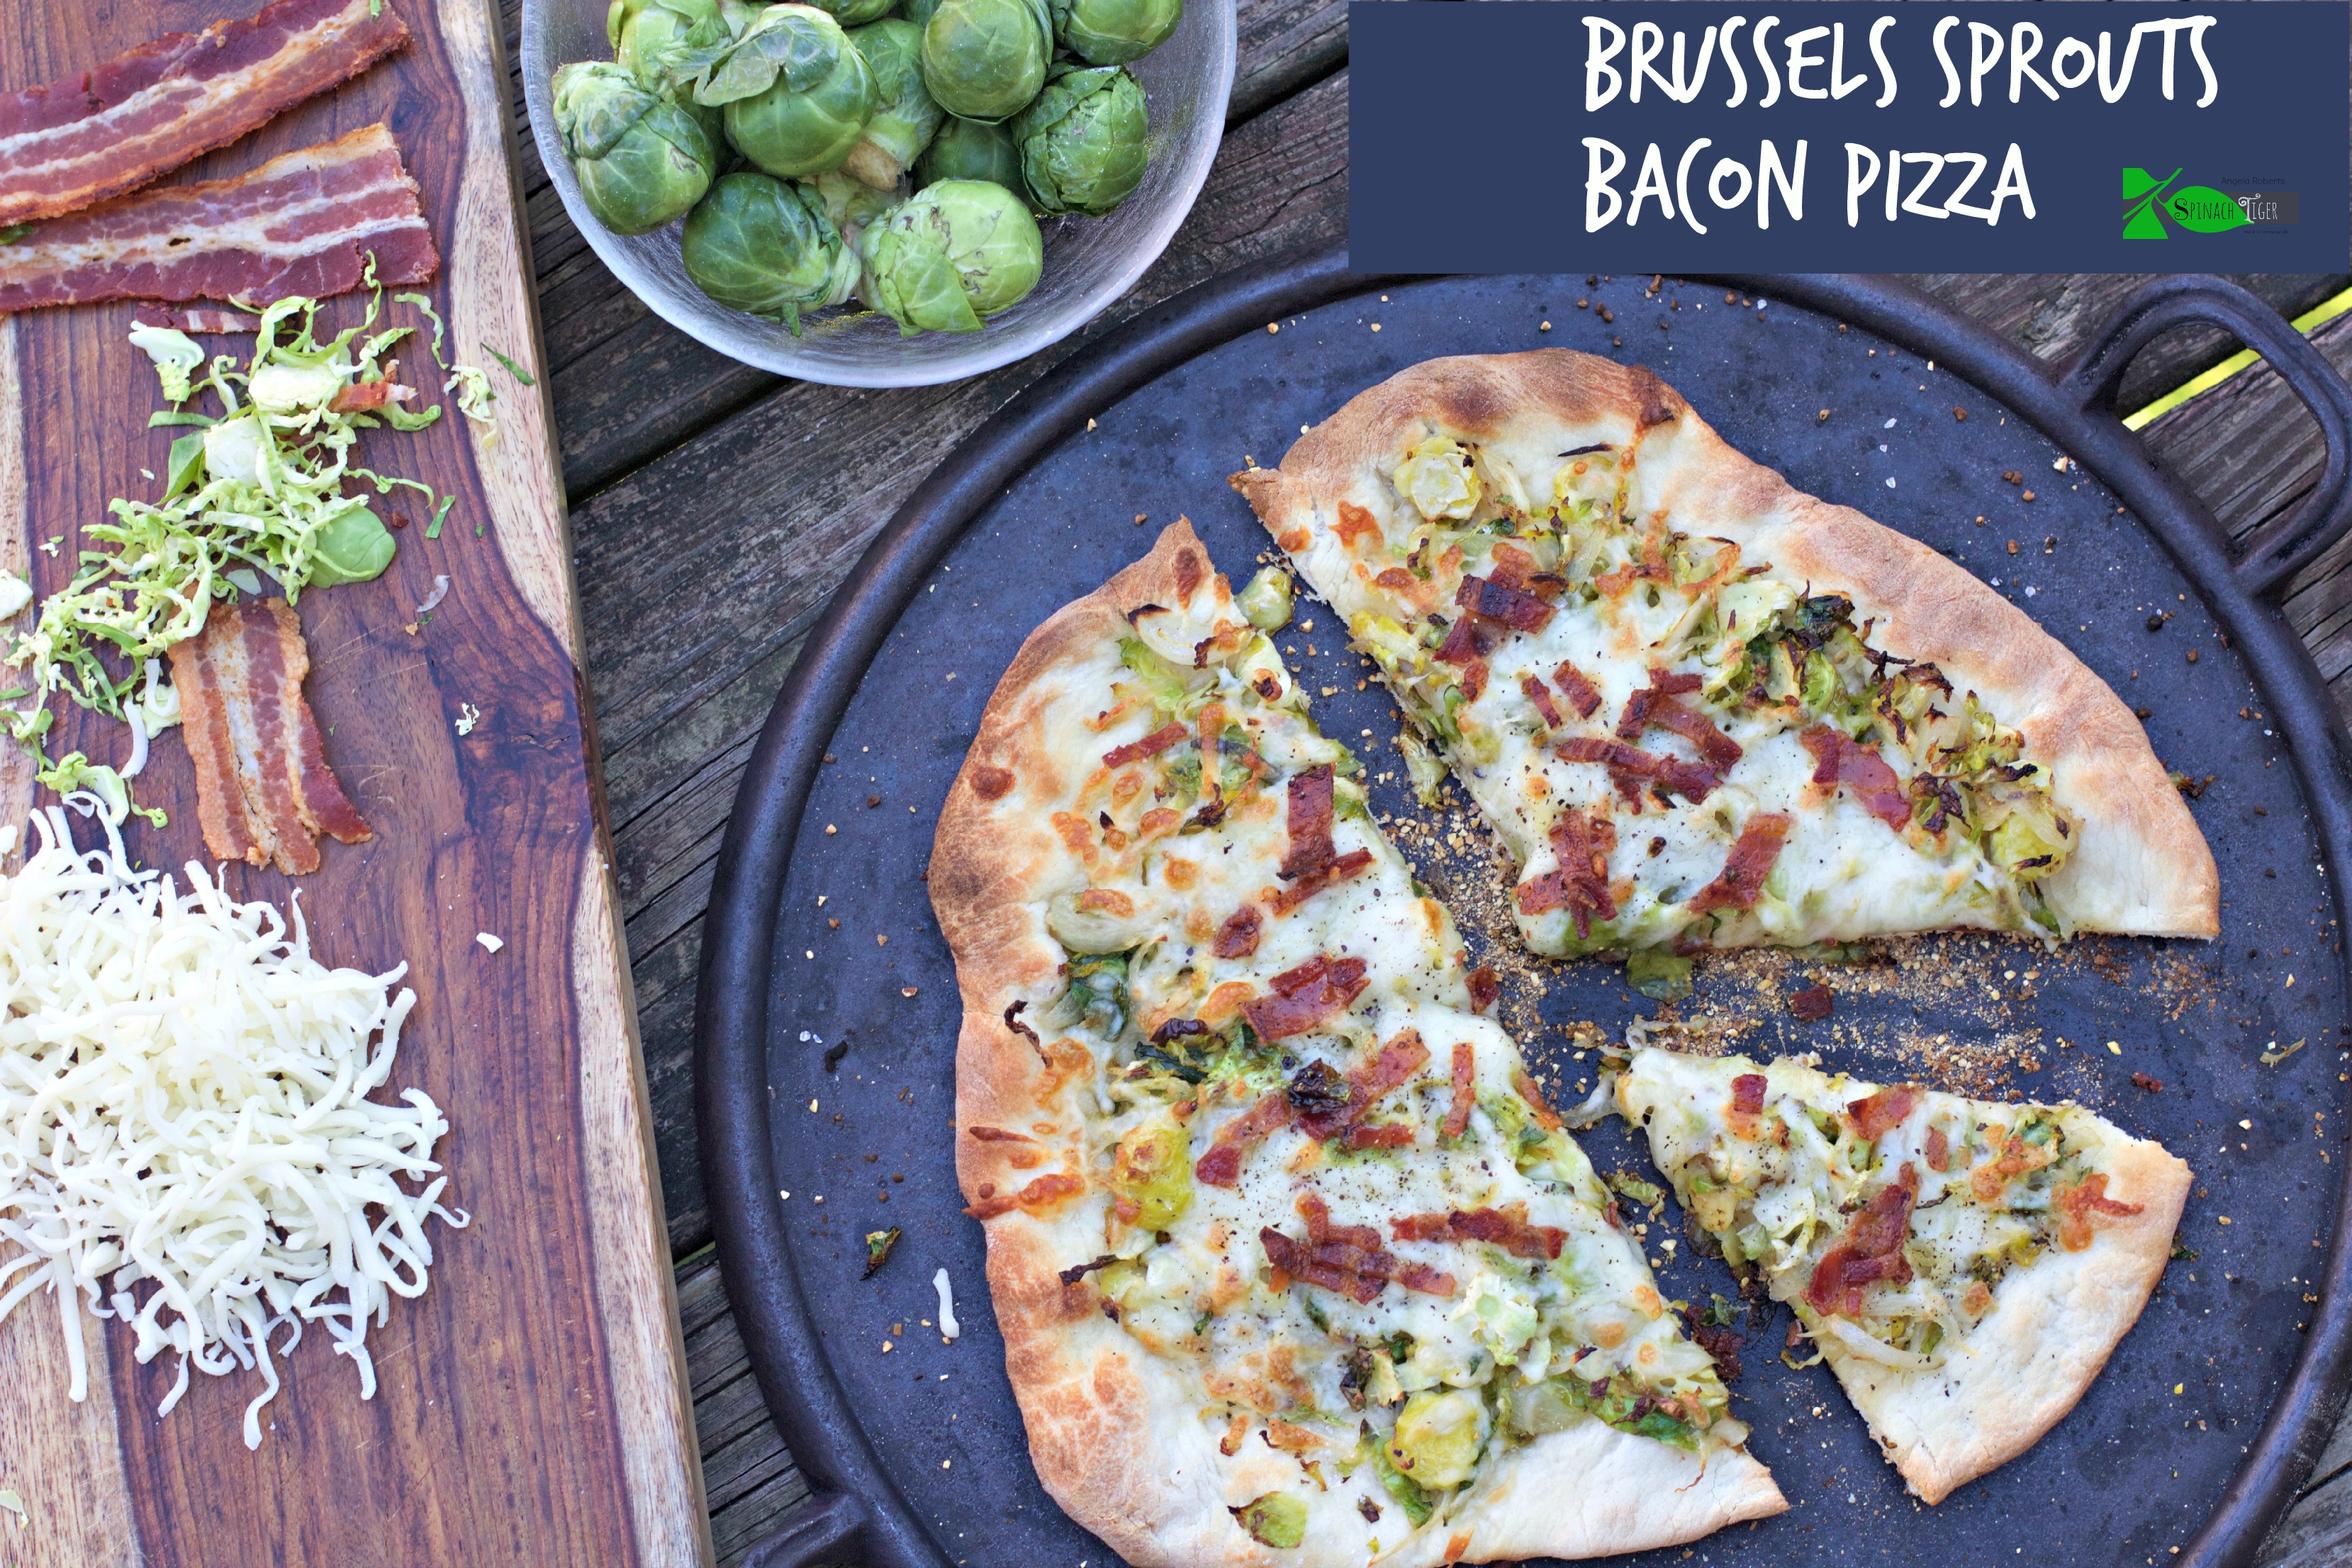 Brussels Sprouts Bacon Pizza from Spinach Tiger